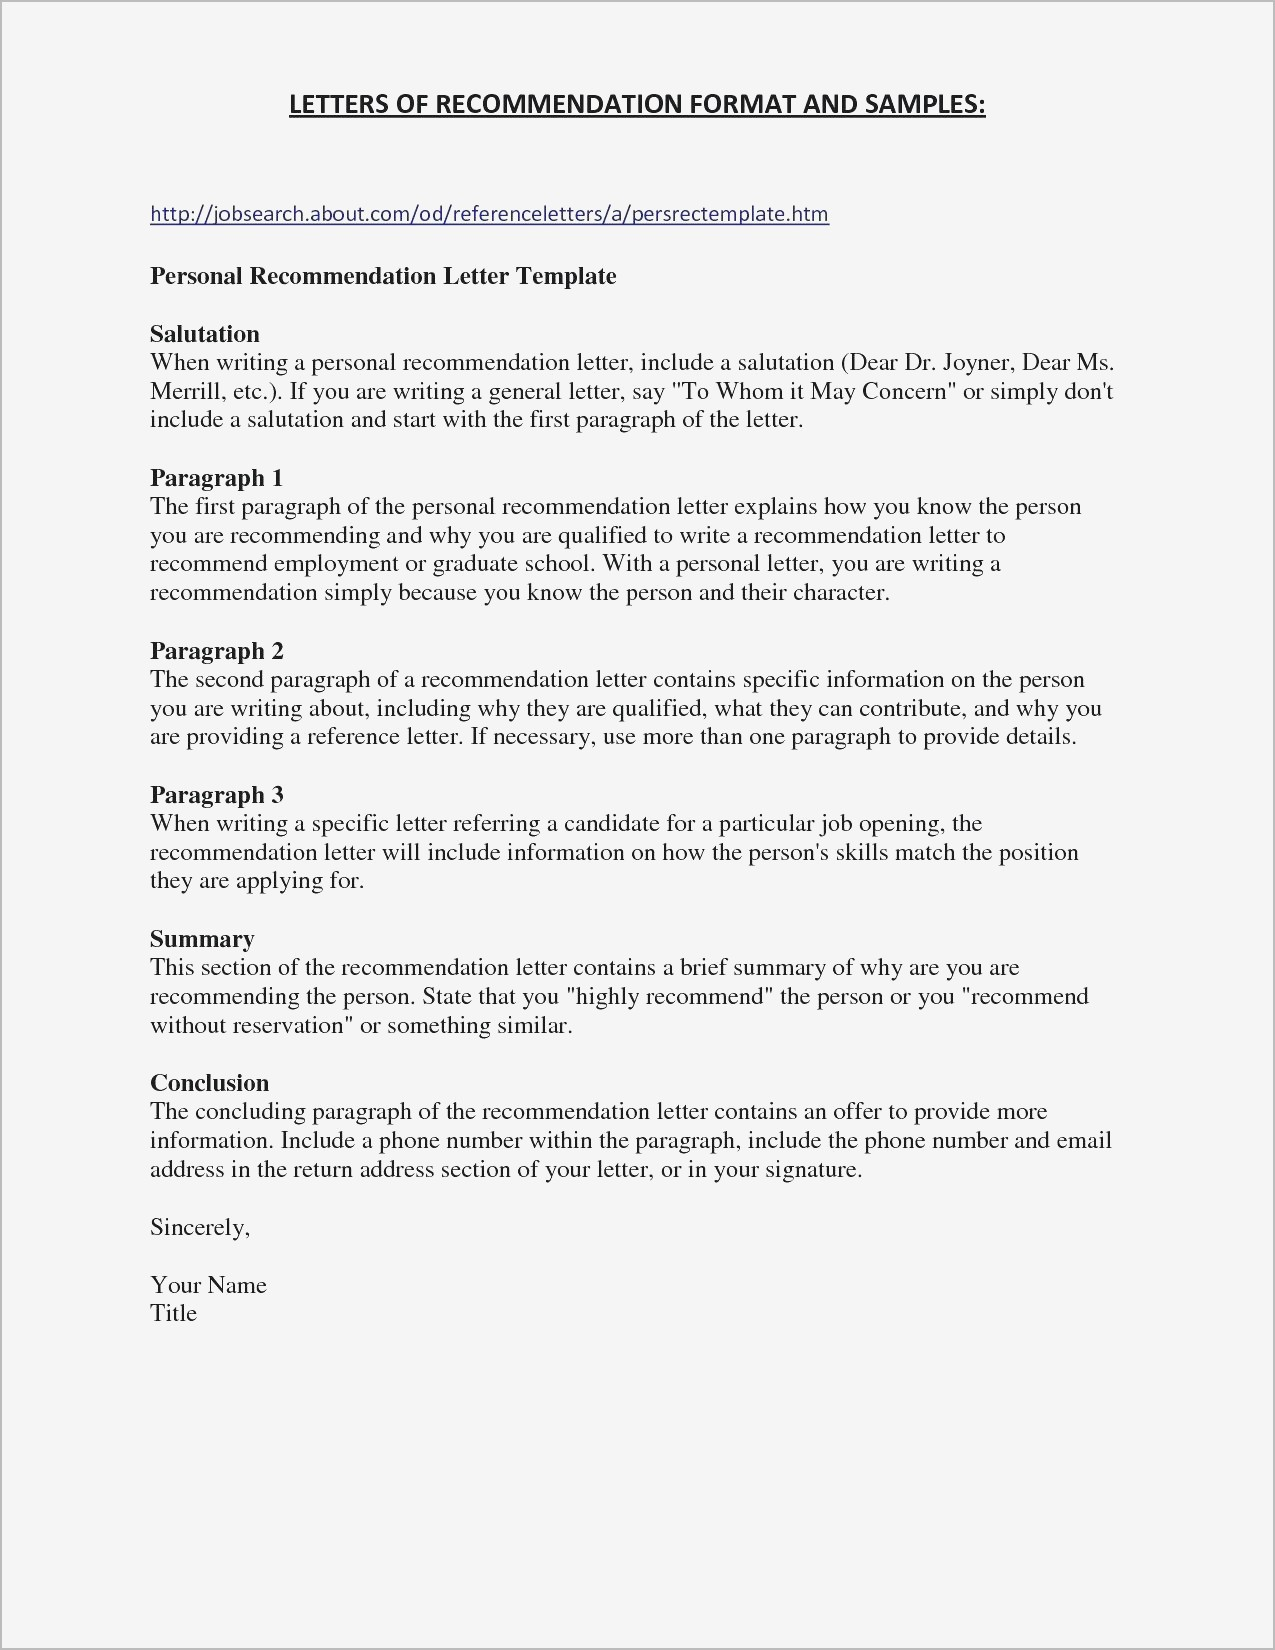 Solicitation Letter Template - Sample Proposal Letter Samples